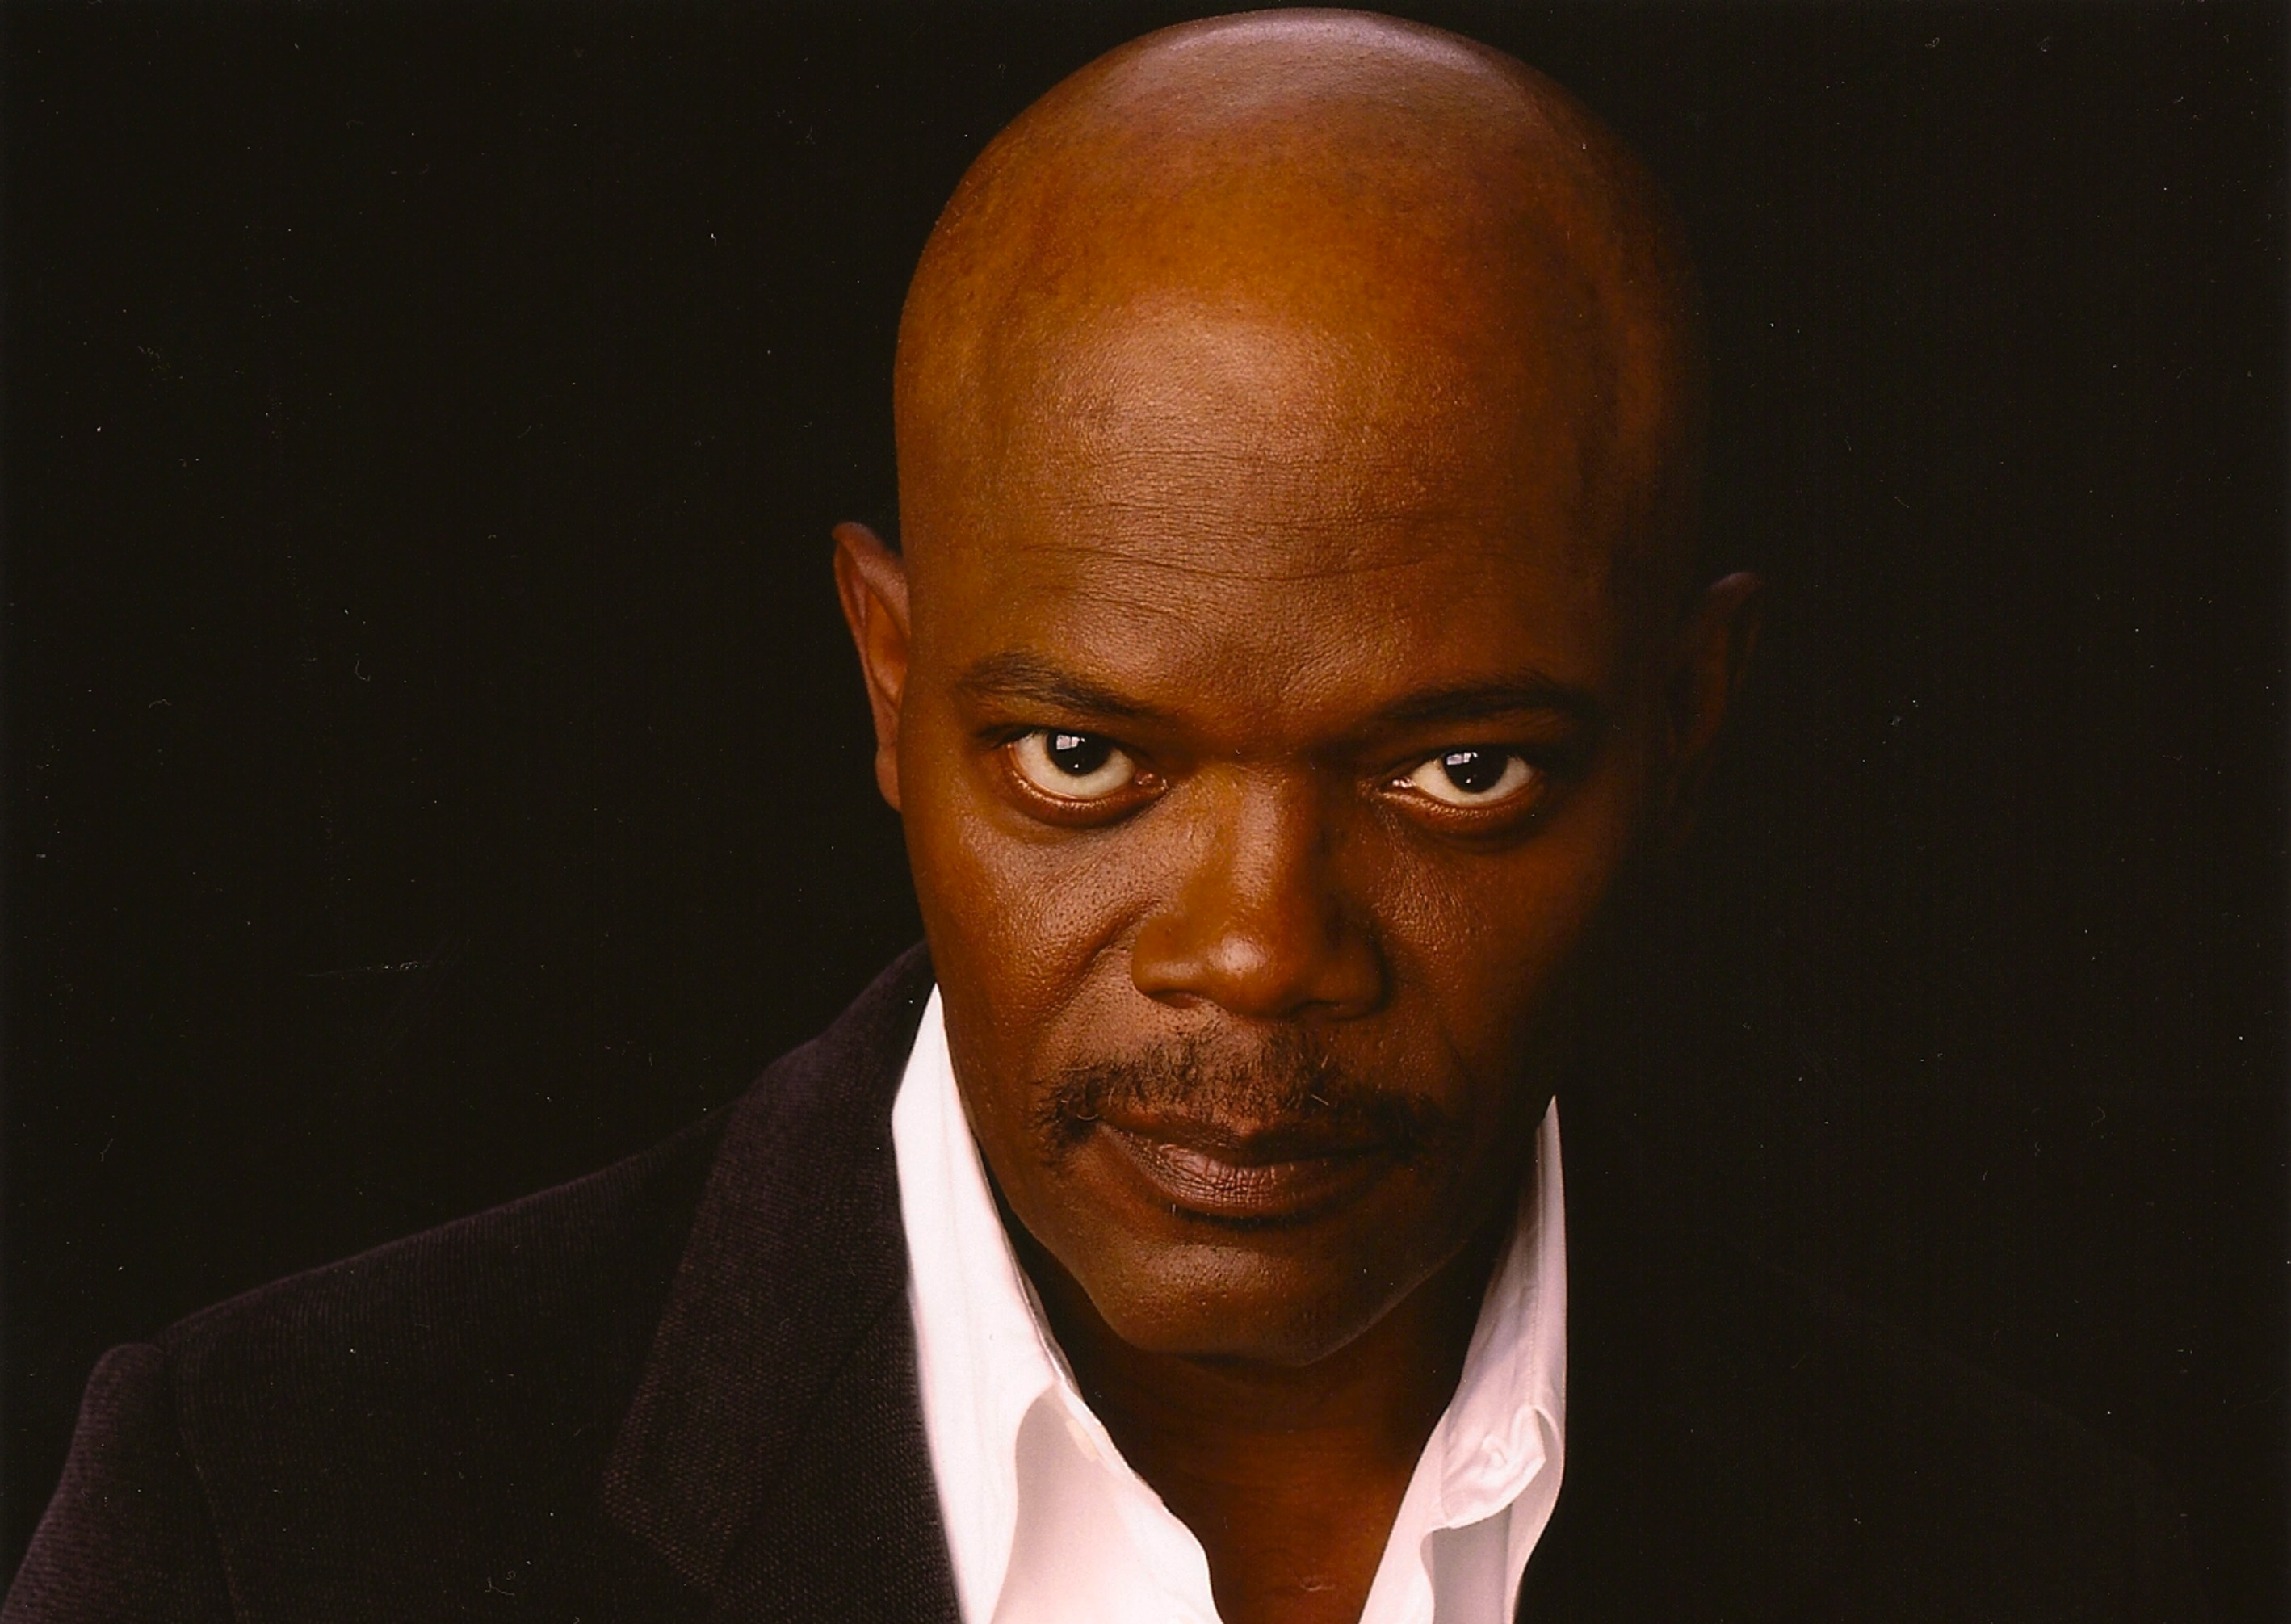 Samuel L. Jackson Kevin Hart Top 50 Celebrities For Brand Endorsements